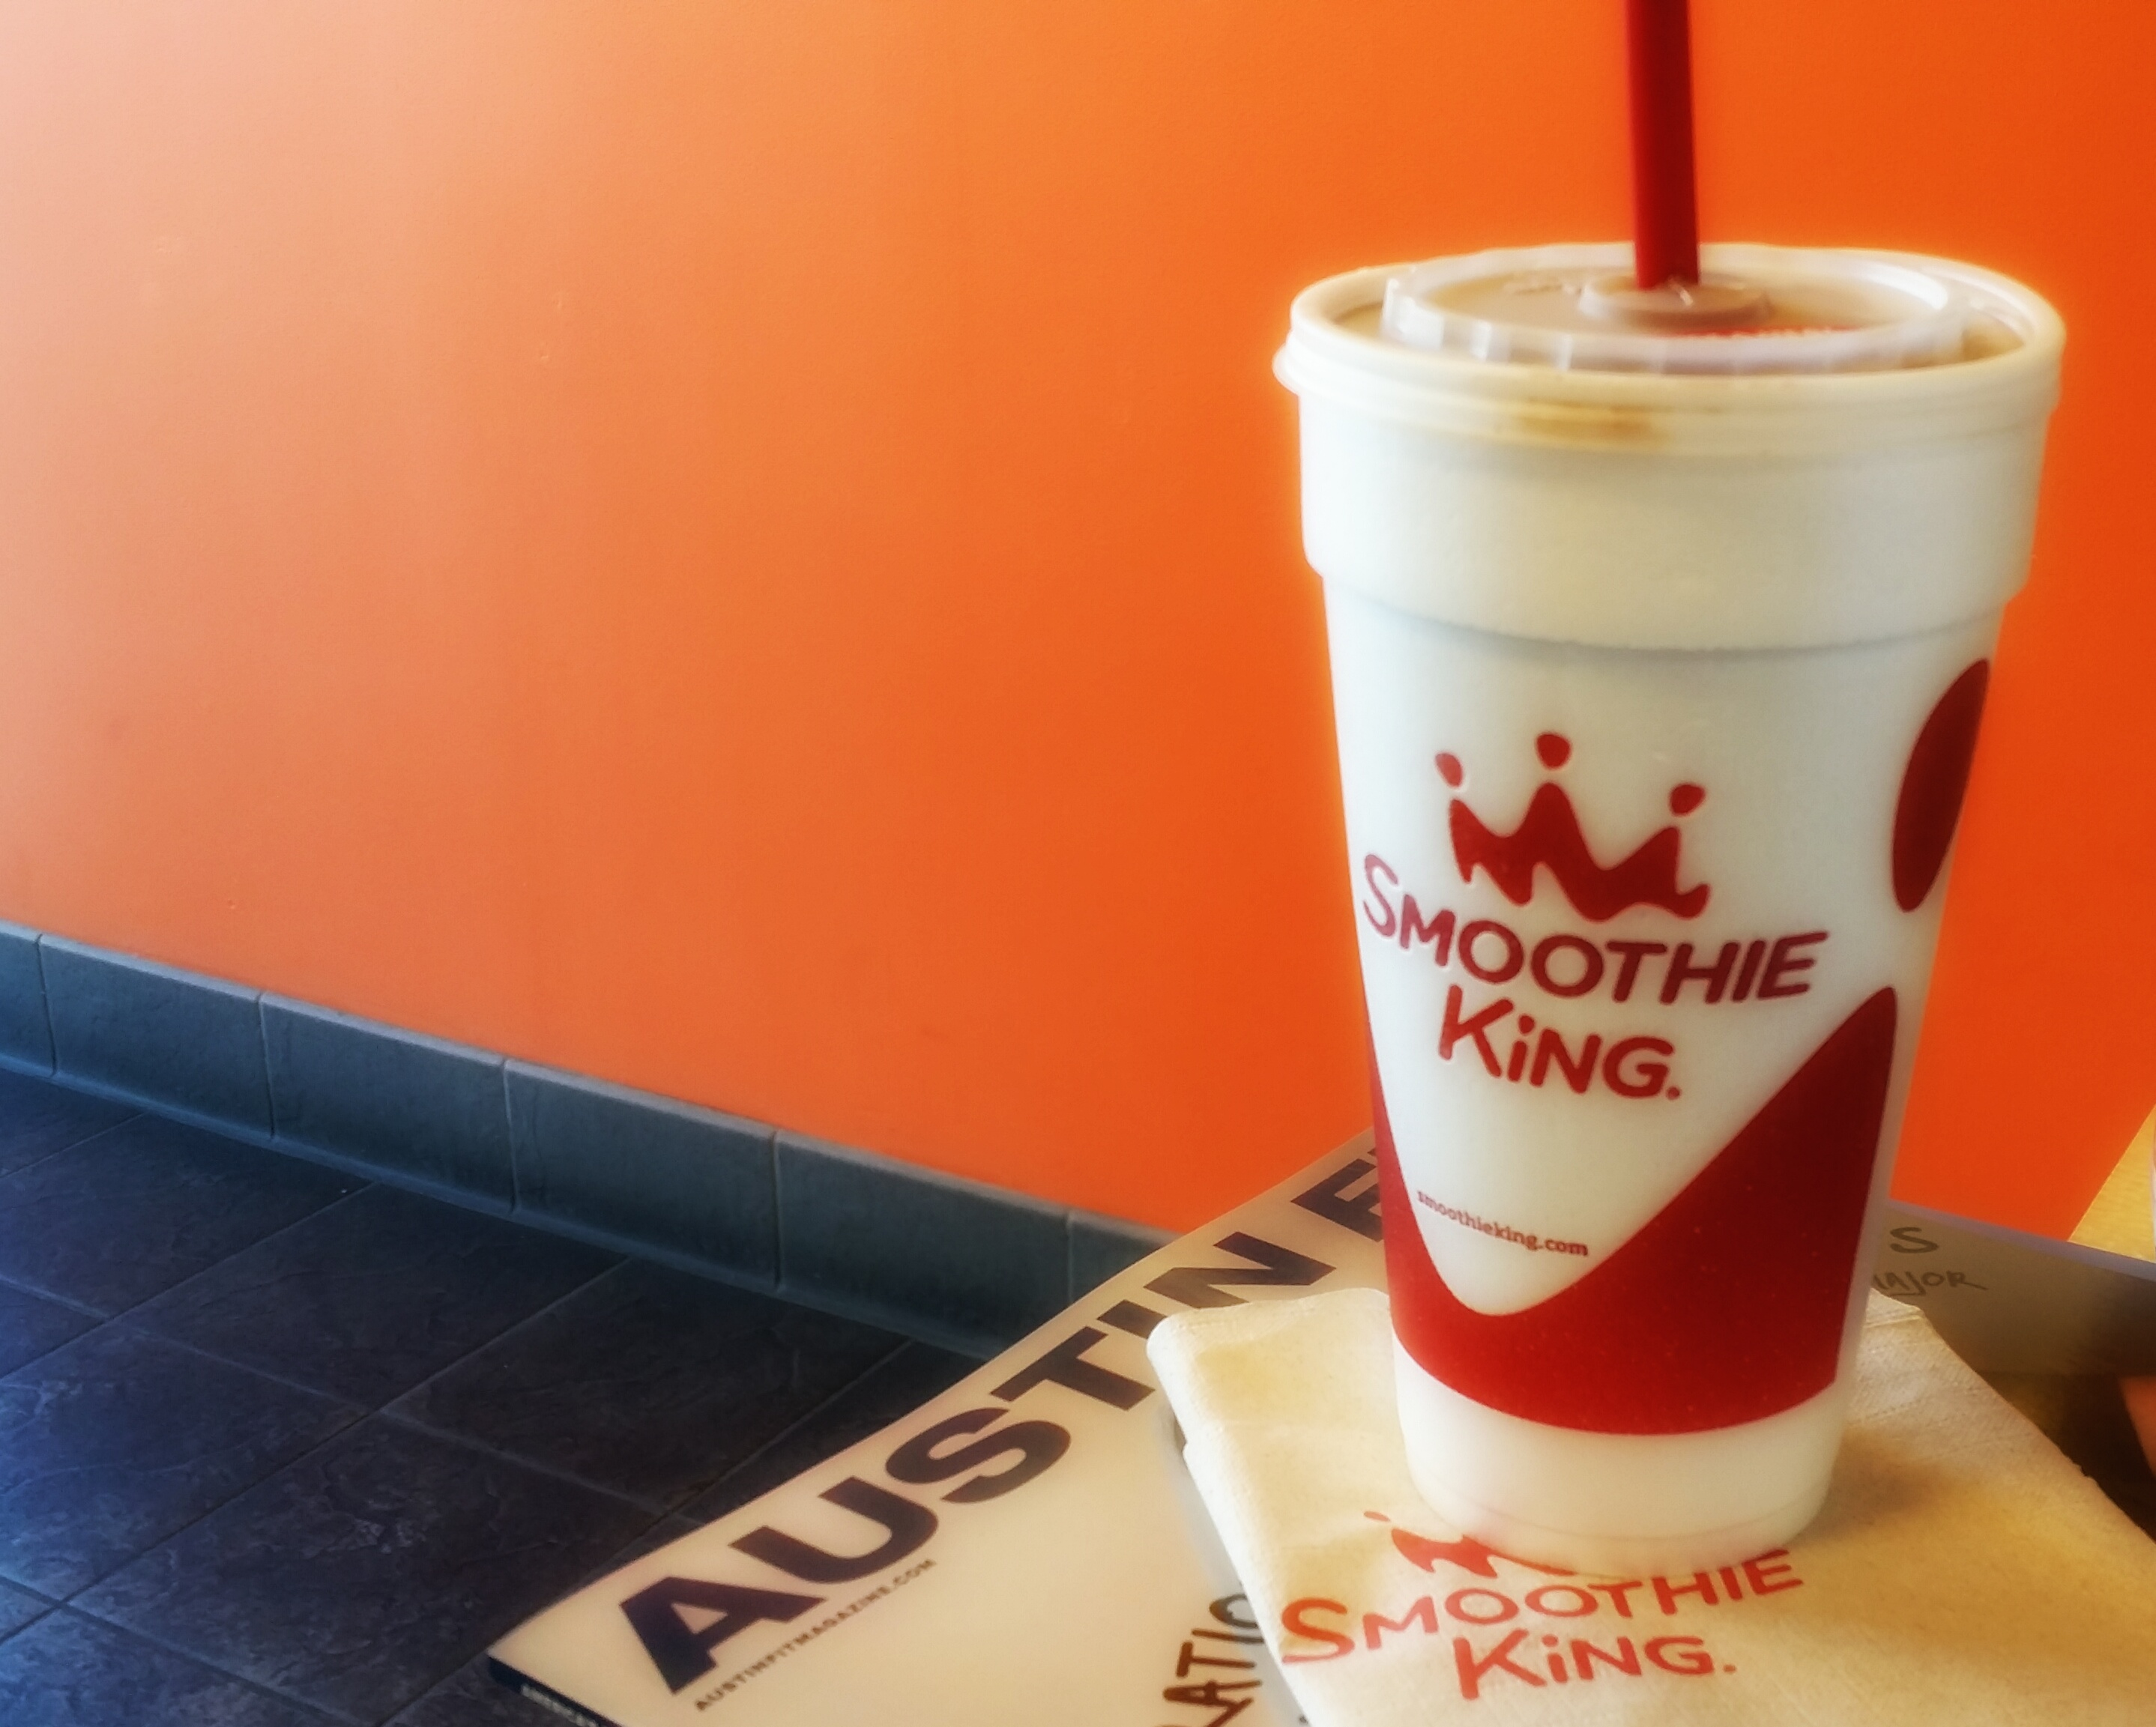 Smoothie King Lean 1 Chocolate